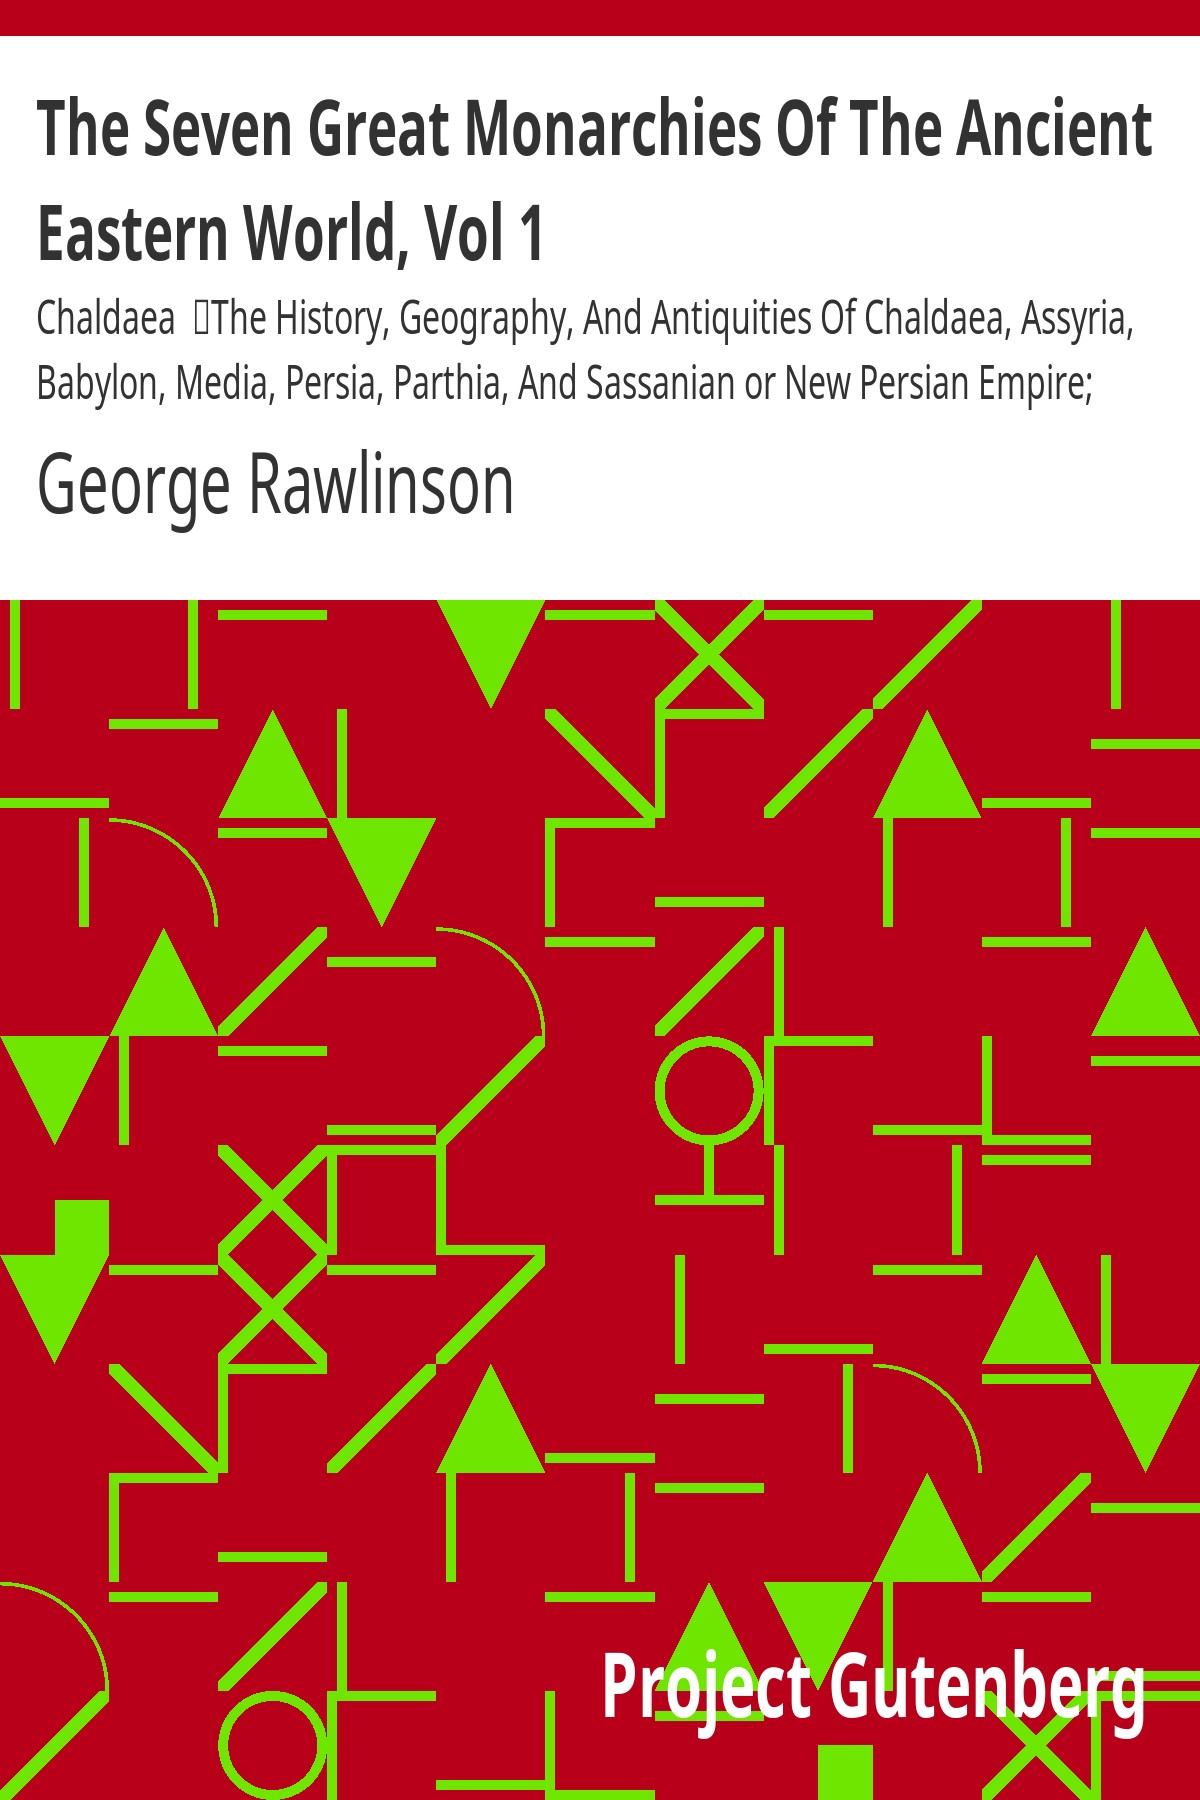 George Rawlinson The Seven Great Monarchies Of The Ancient Eastern World, Vol 1: Chaldaea The History, Geography, And Antiquities Of Chaldaea, Assyria, Babylon, Media, Persia, Parthia, And Sassania